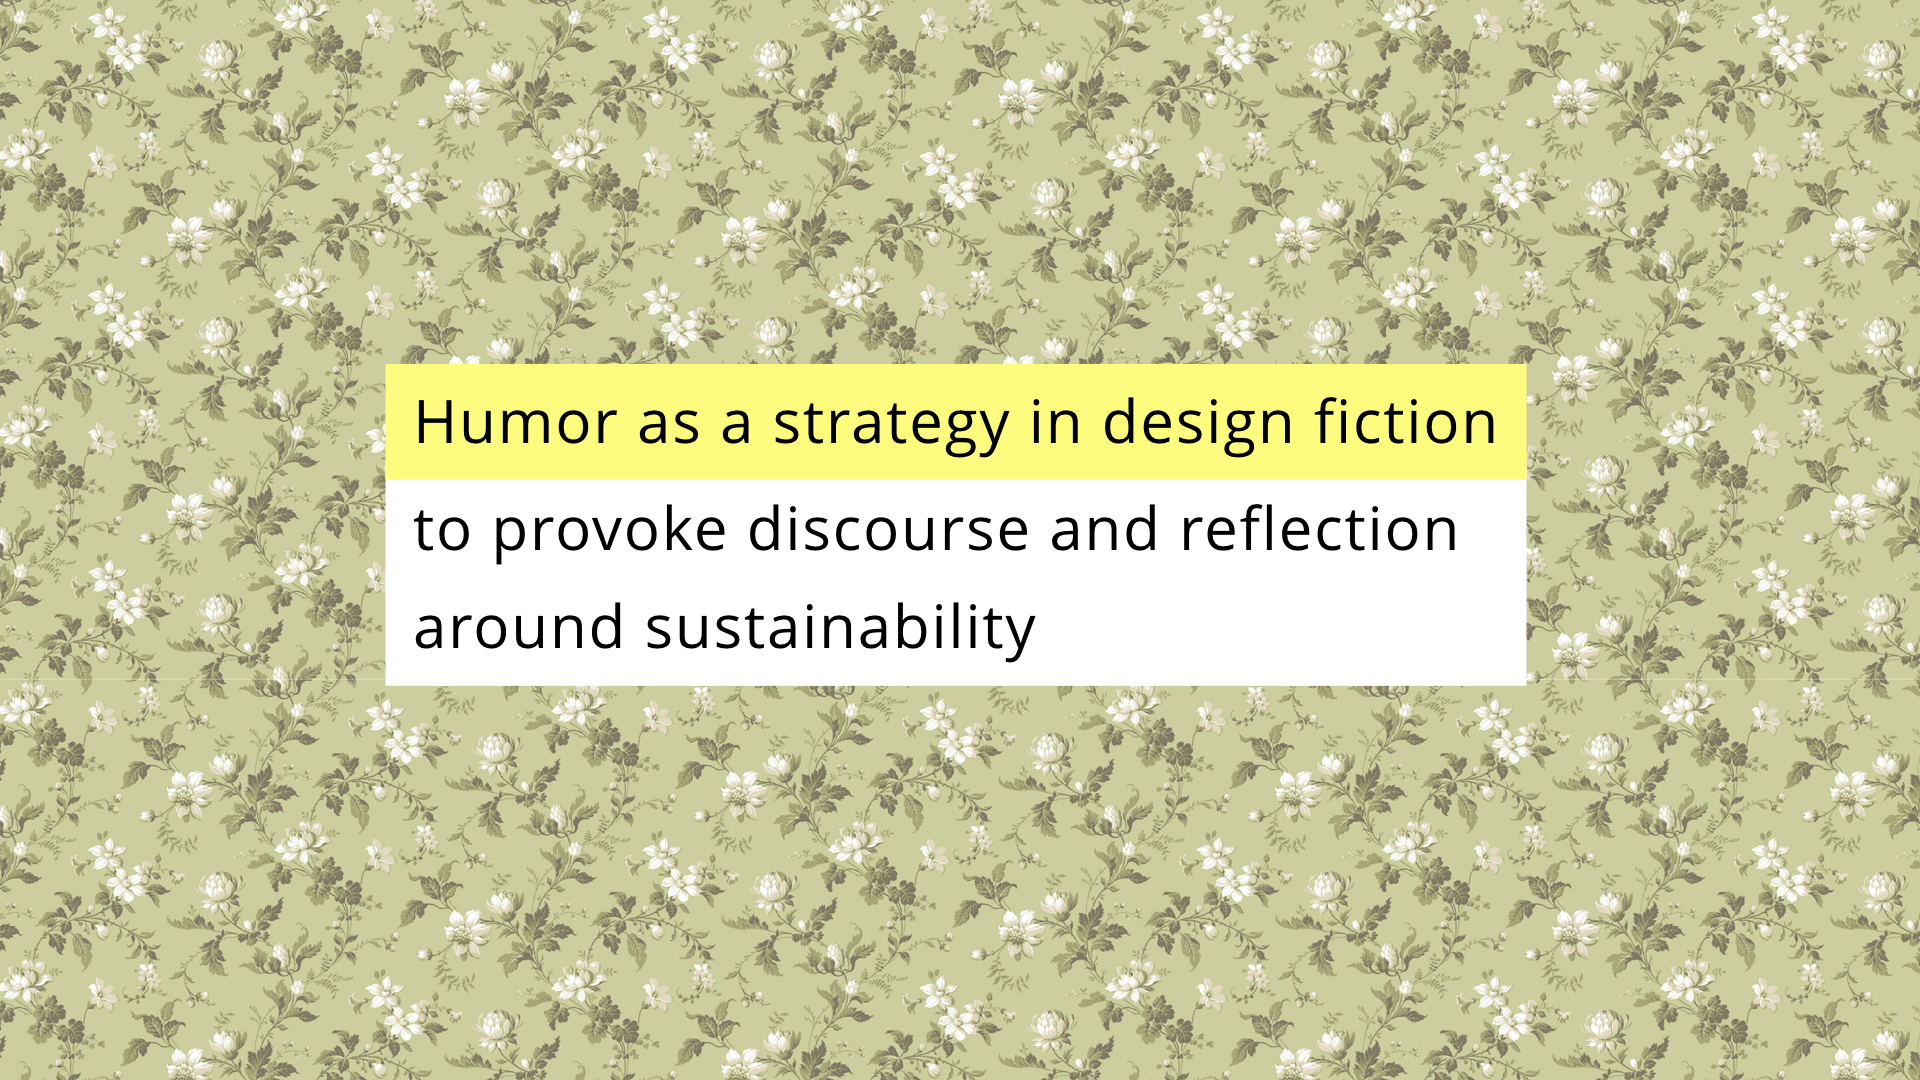 NordiCHI future scenarios presentation: Humor as a strategy in design fiction